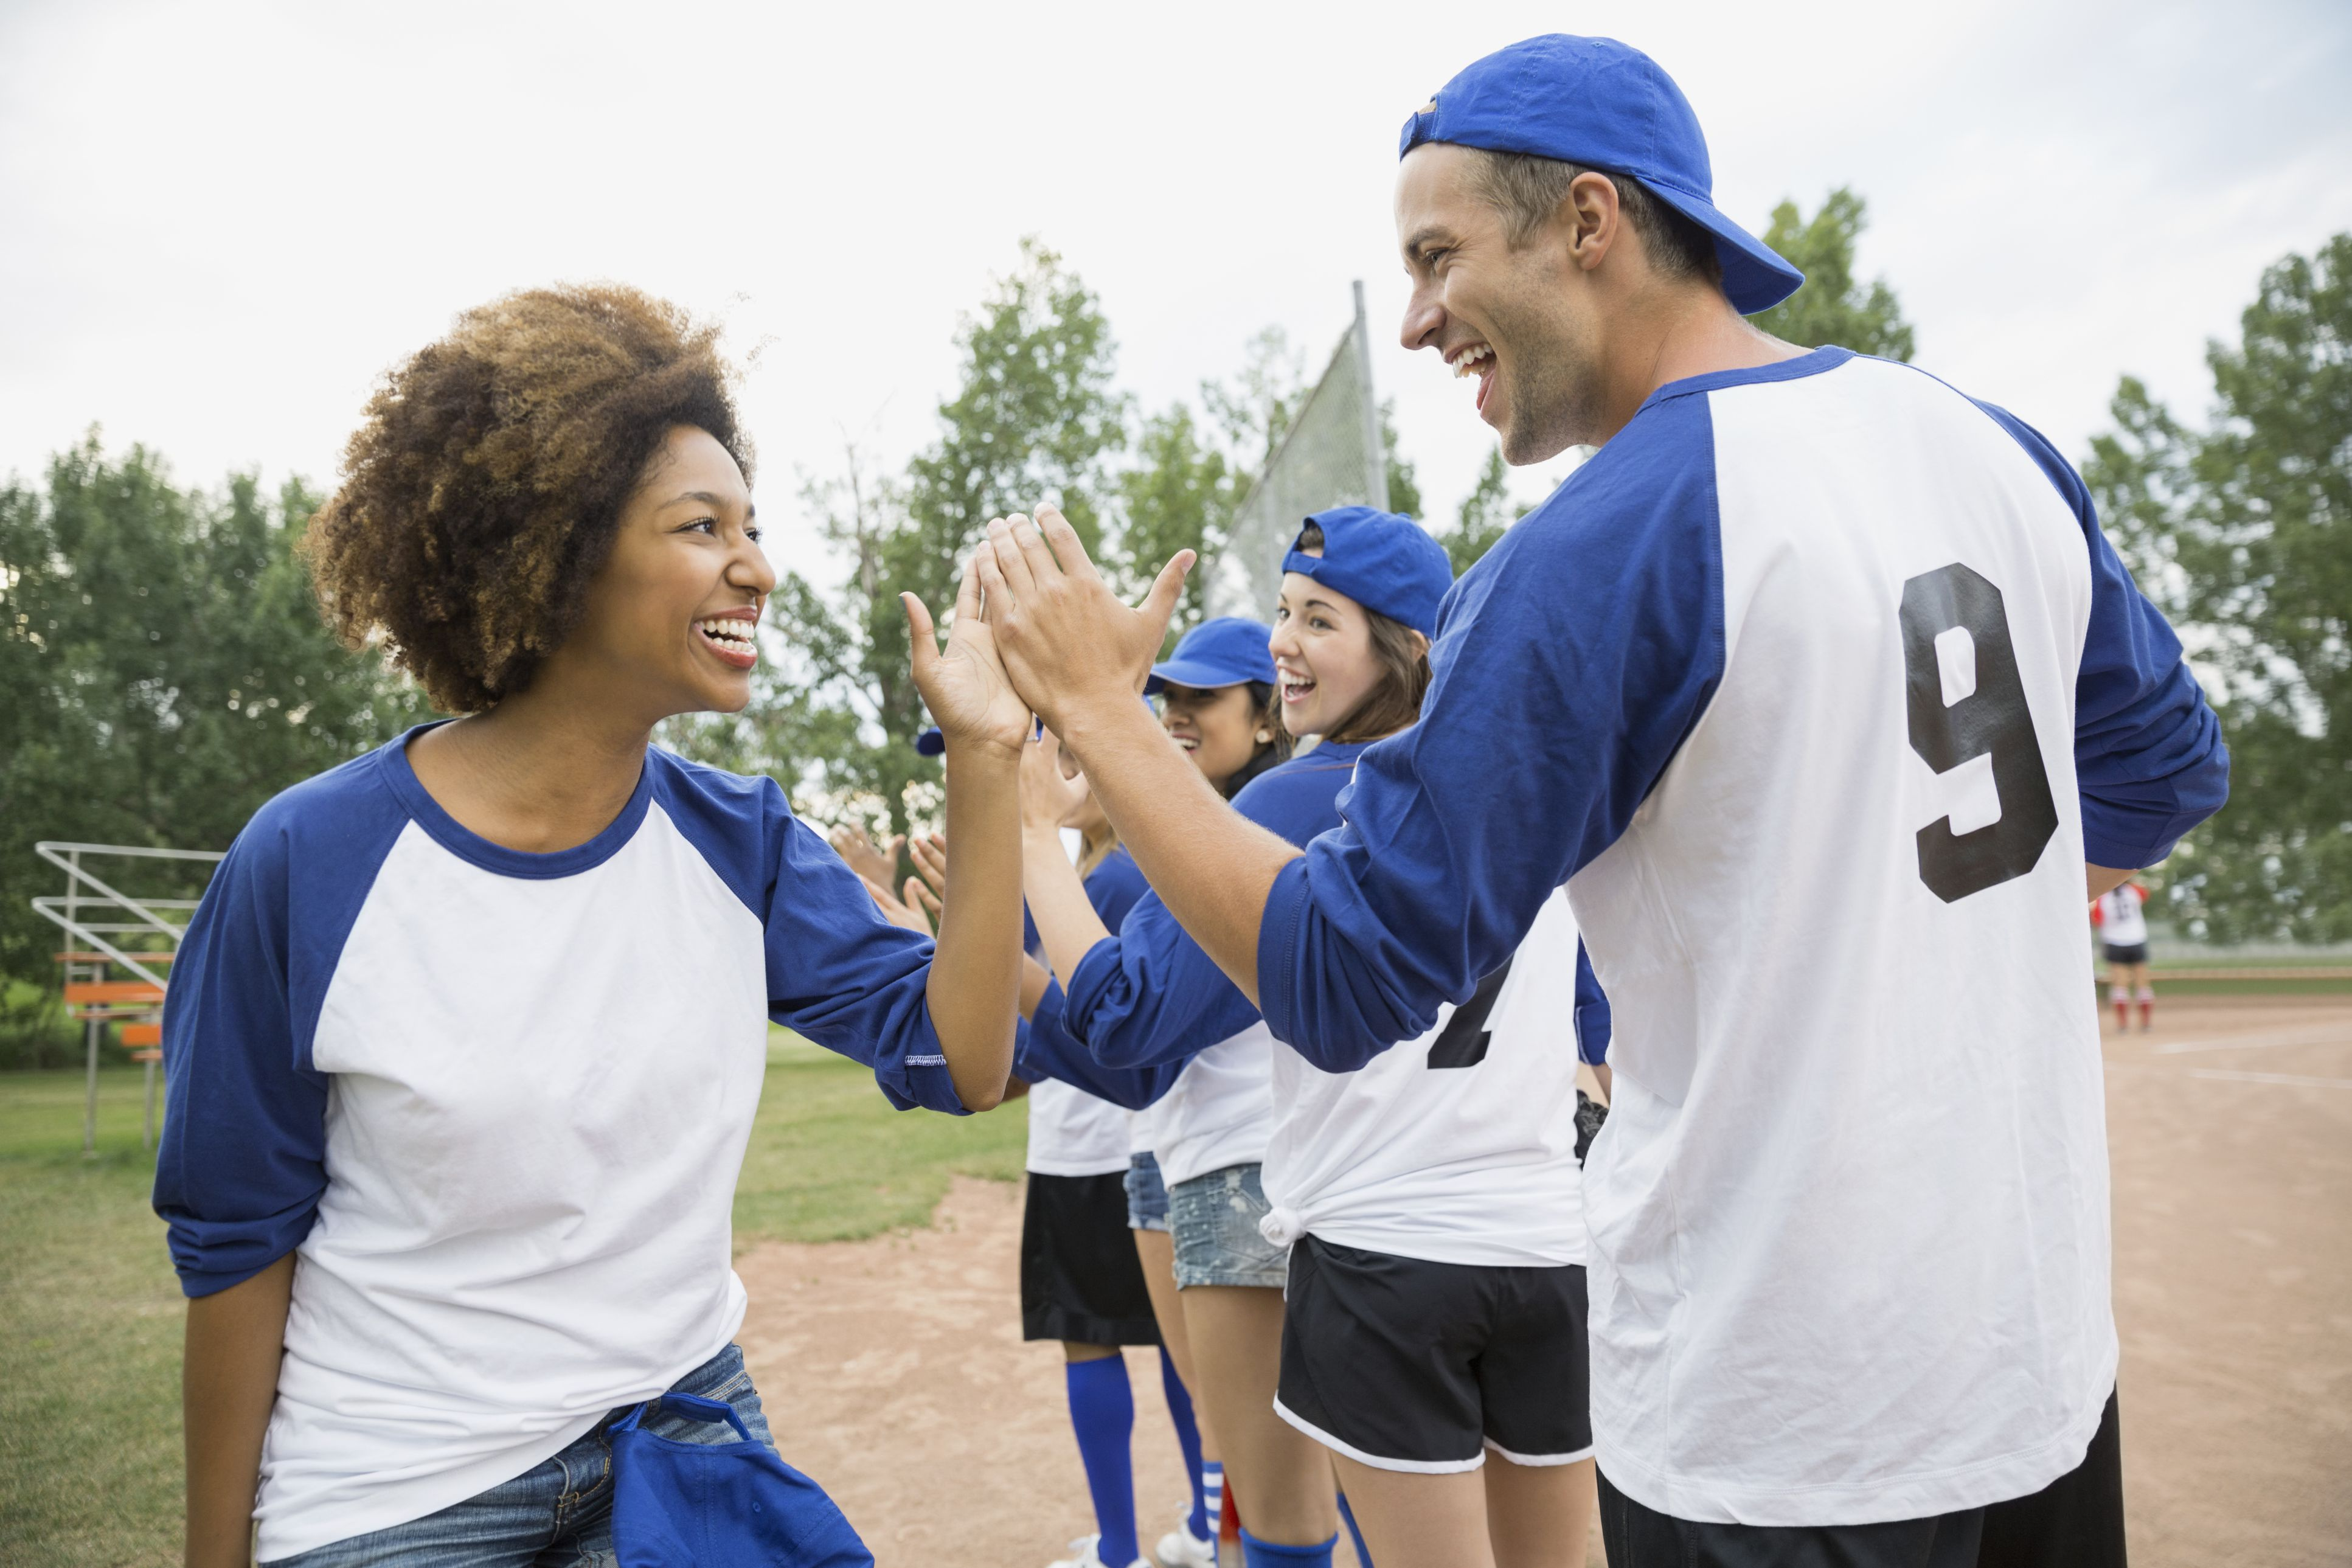 Why Athletes Need Supportive Friends and Family